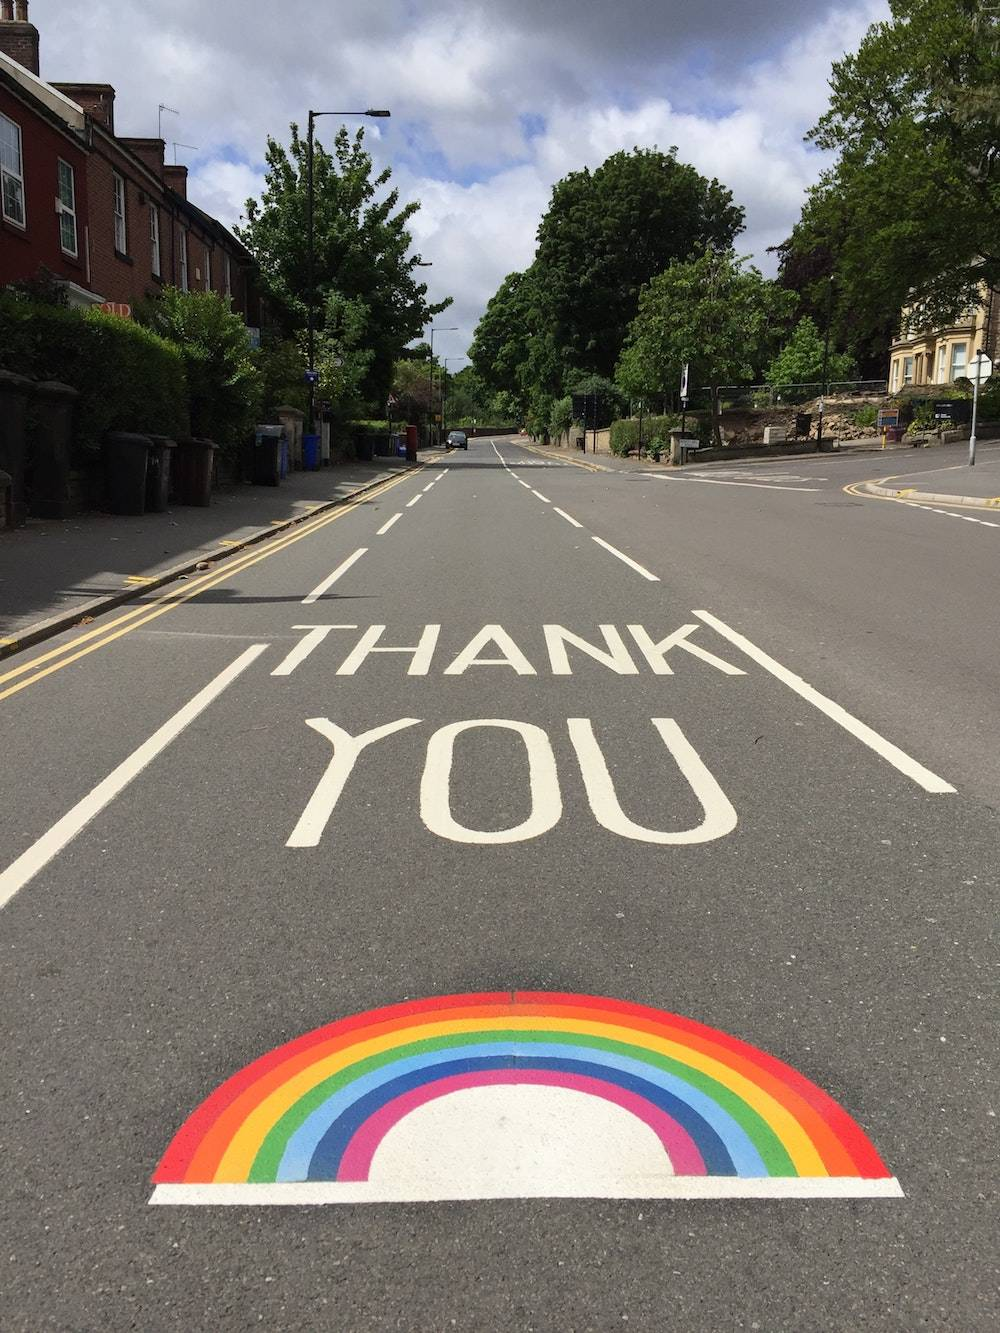 creative ways to say thank you - rainbow painted in the road with thank you in big letters